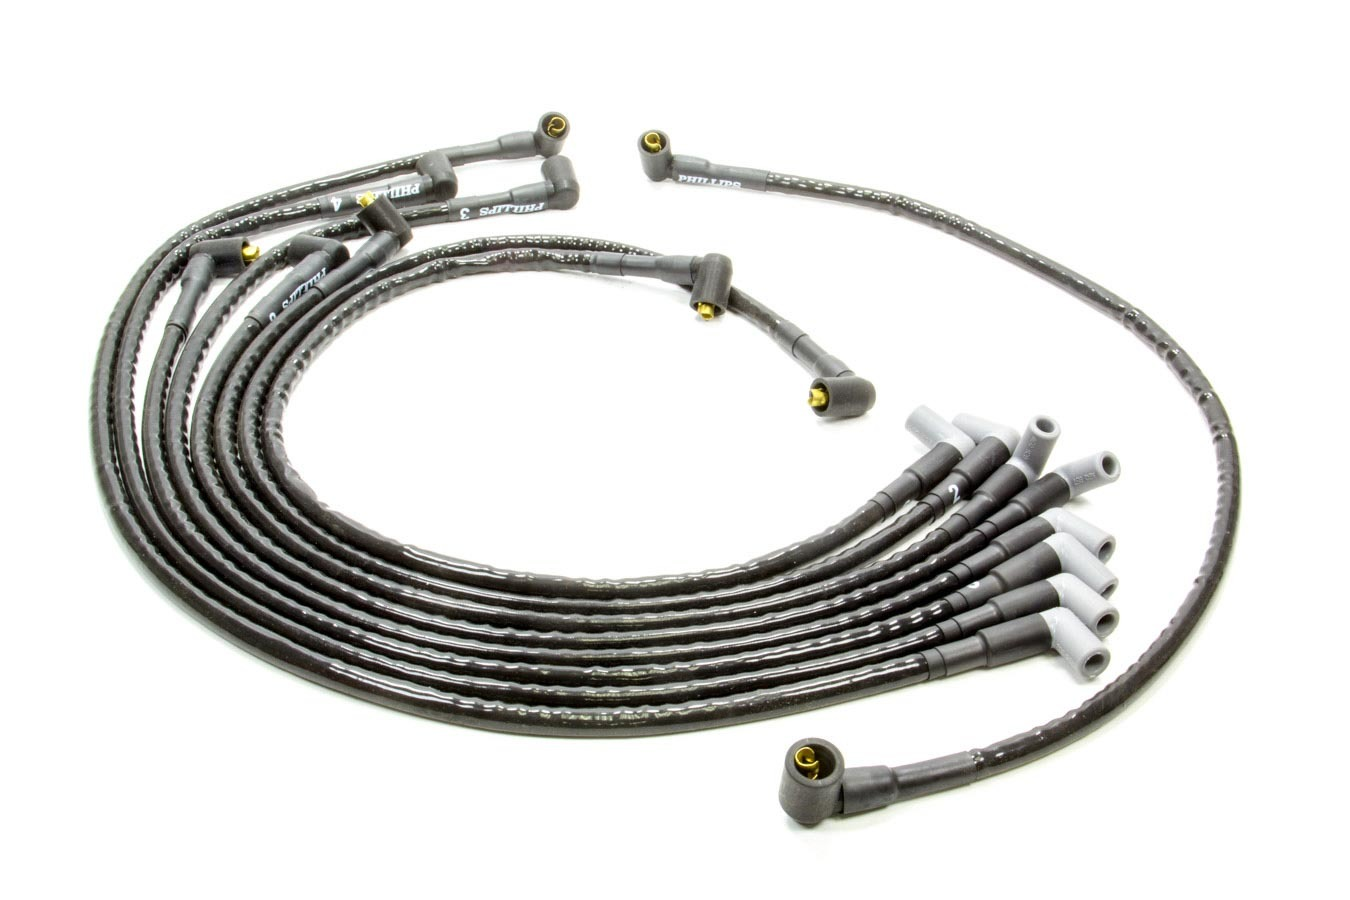 Woody Wires S816 Spark Plug Wire Set, Woody Wires, Spiral Core, 8 mm, Sleeved, Black, 90 Degree Boots, Socket Style, Around Back, Small Block Chevy, Kit